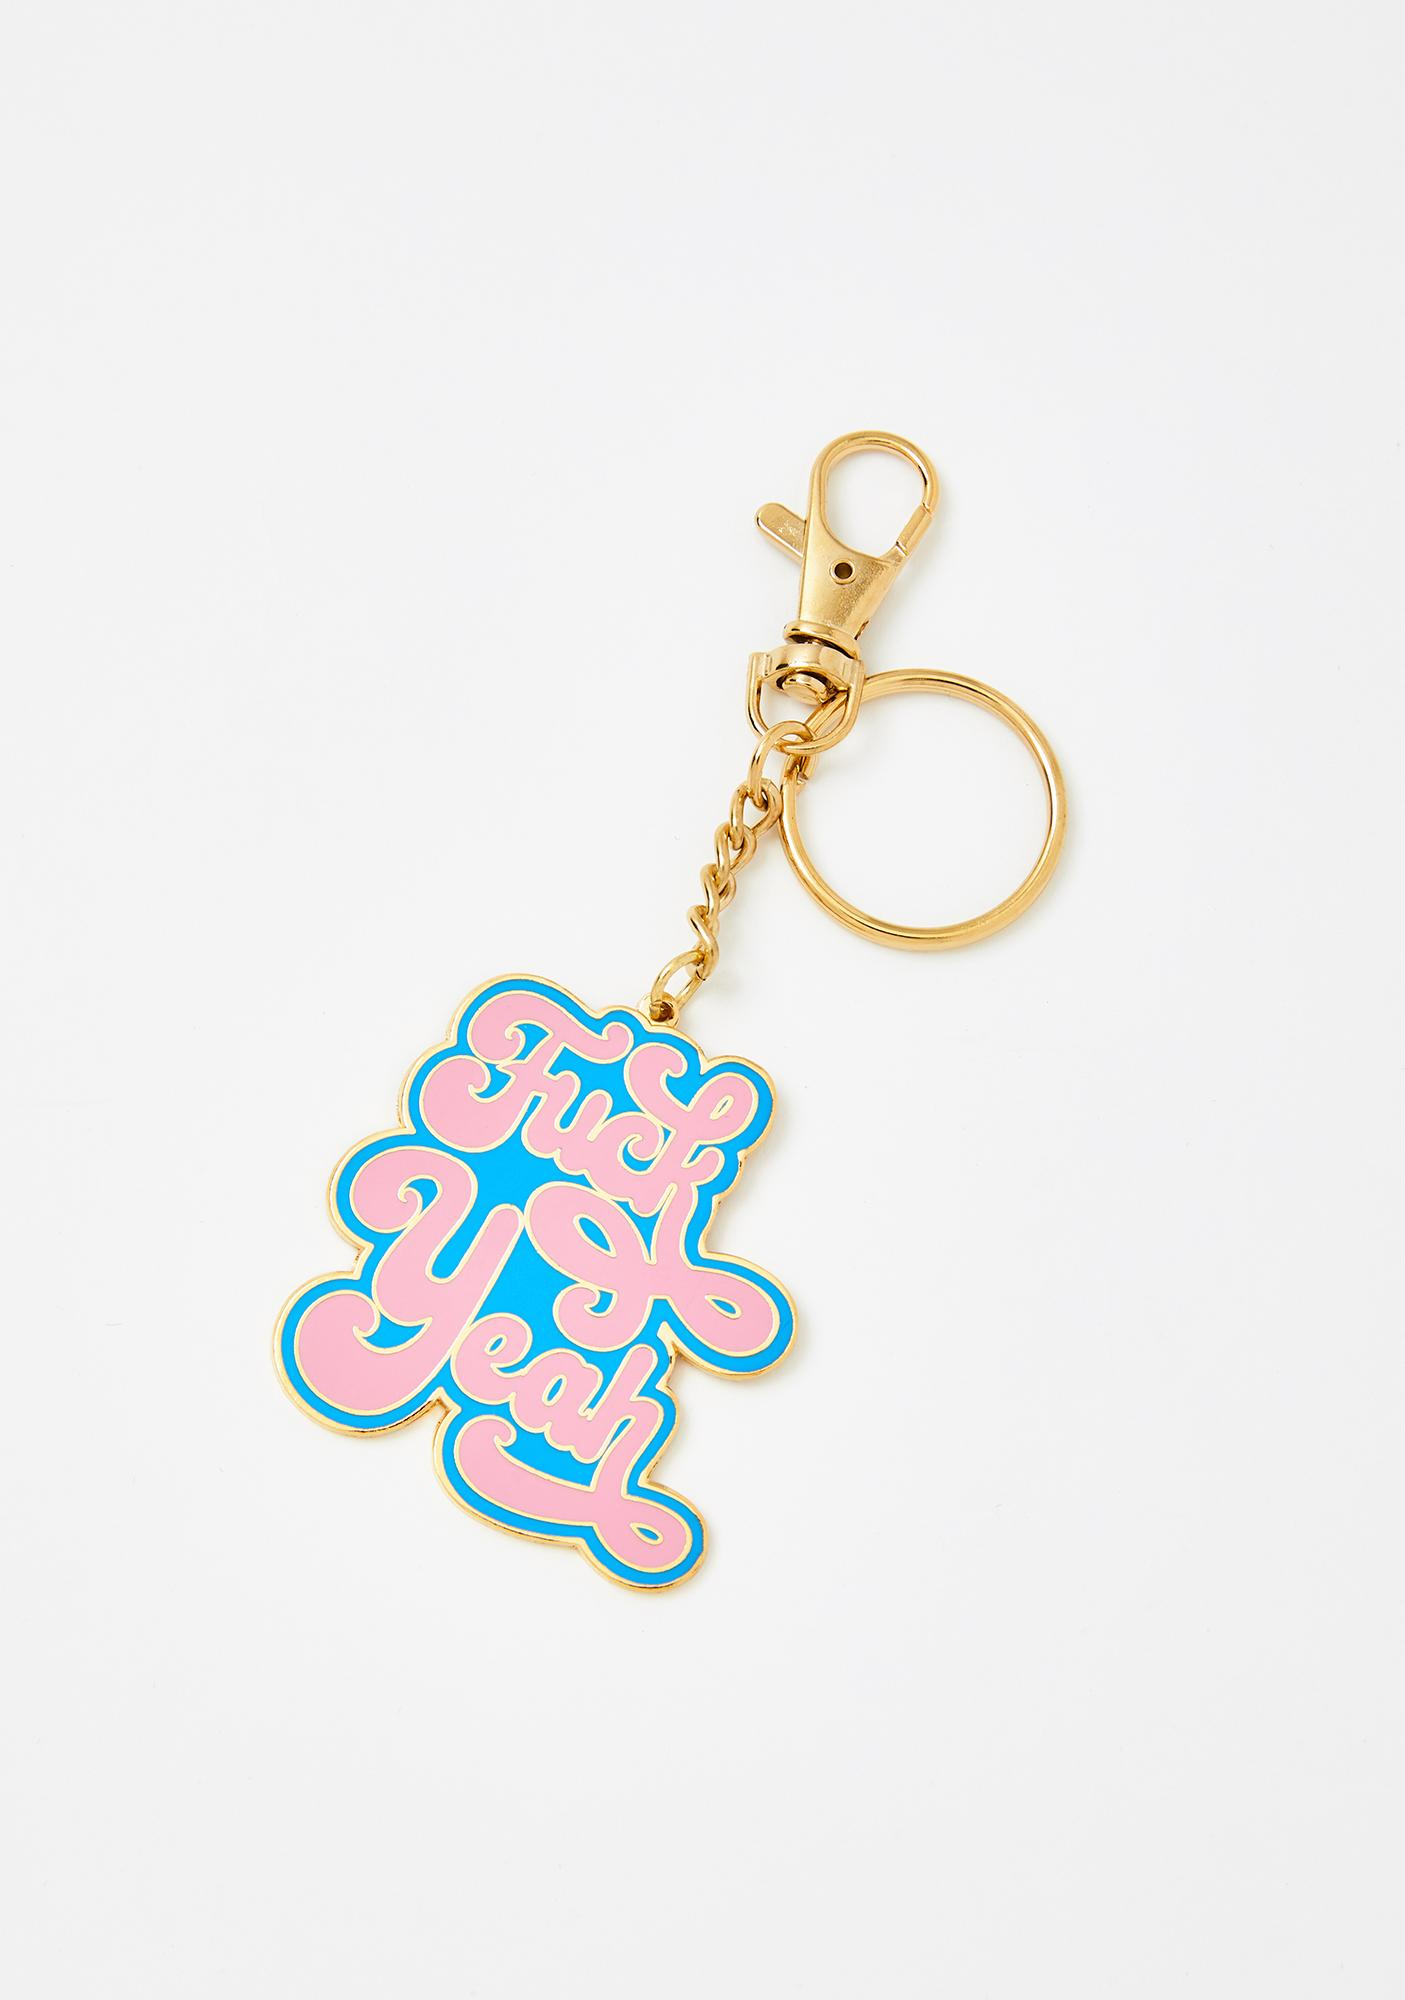 Made Au Gold Blue Fuck Yeah Keychain